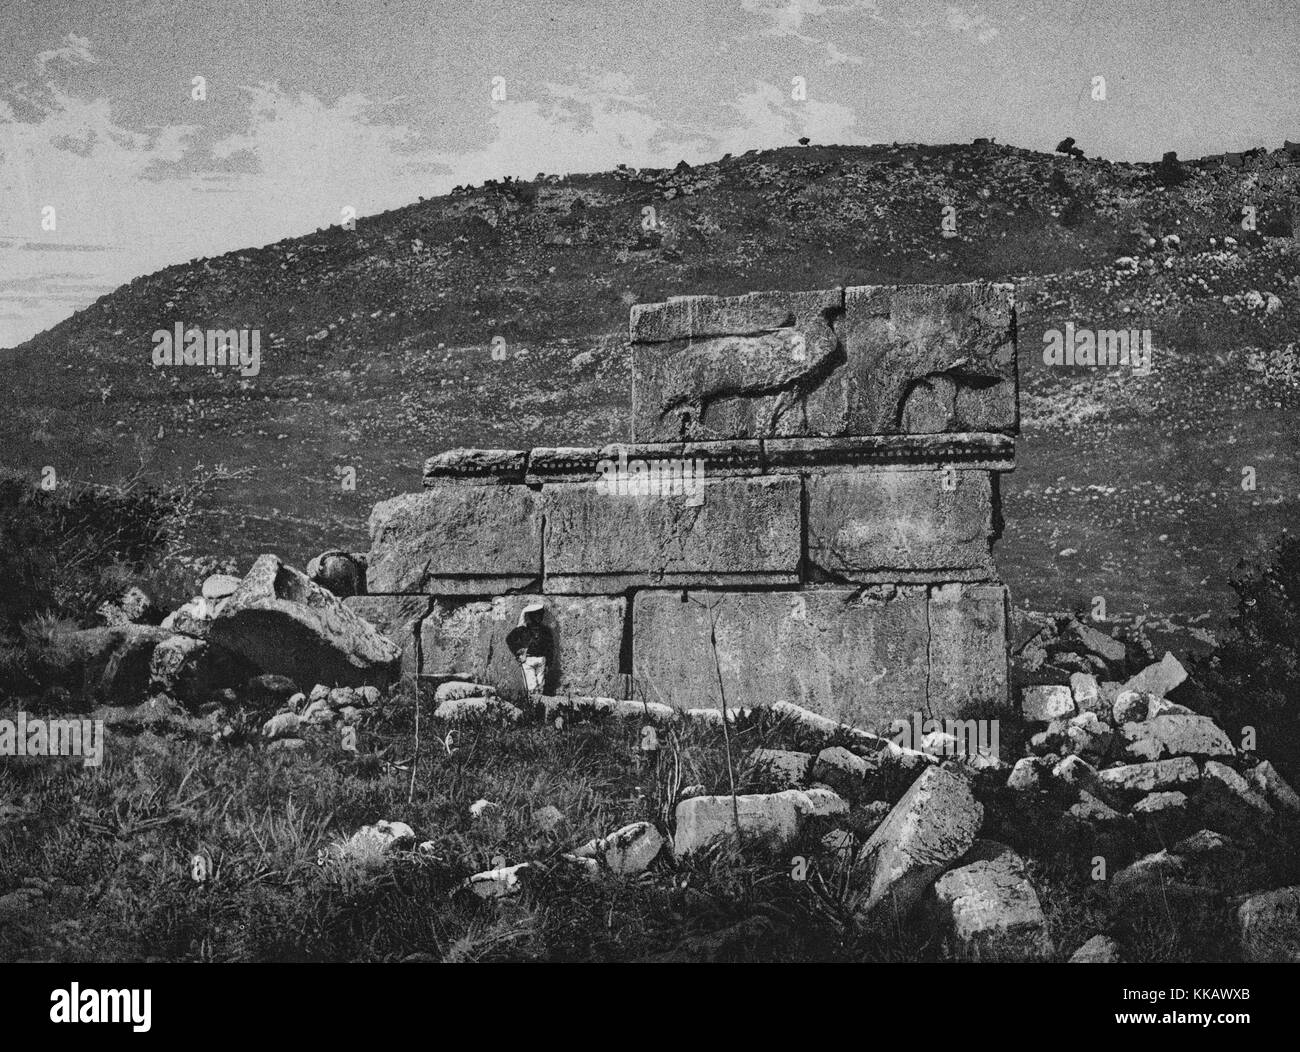 The ruins of Qasr Al-Abd that stand near Araq El-Emir, a stone palace with Hellenistic architecture that has been - Stock Image